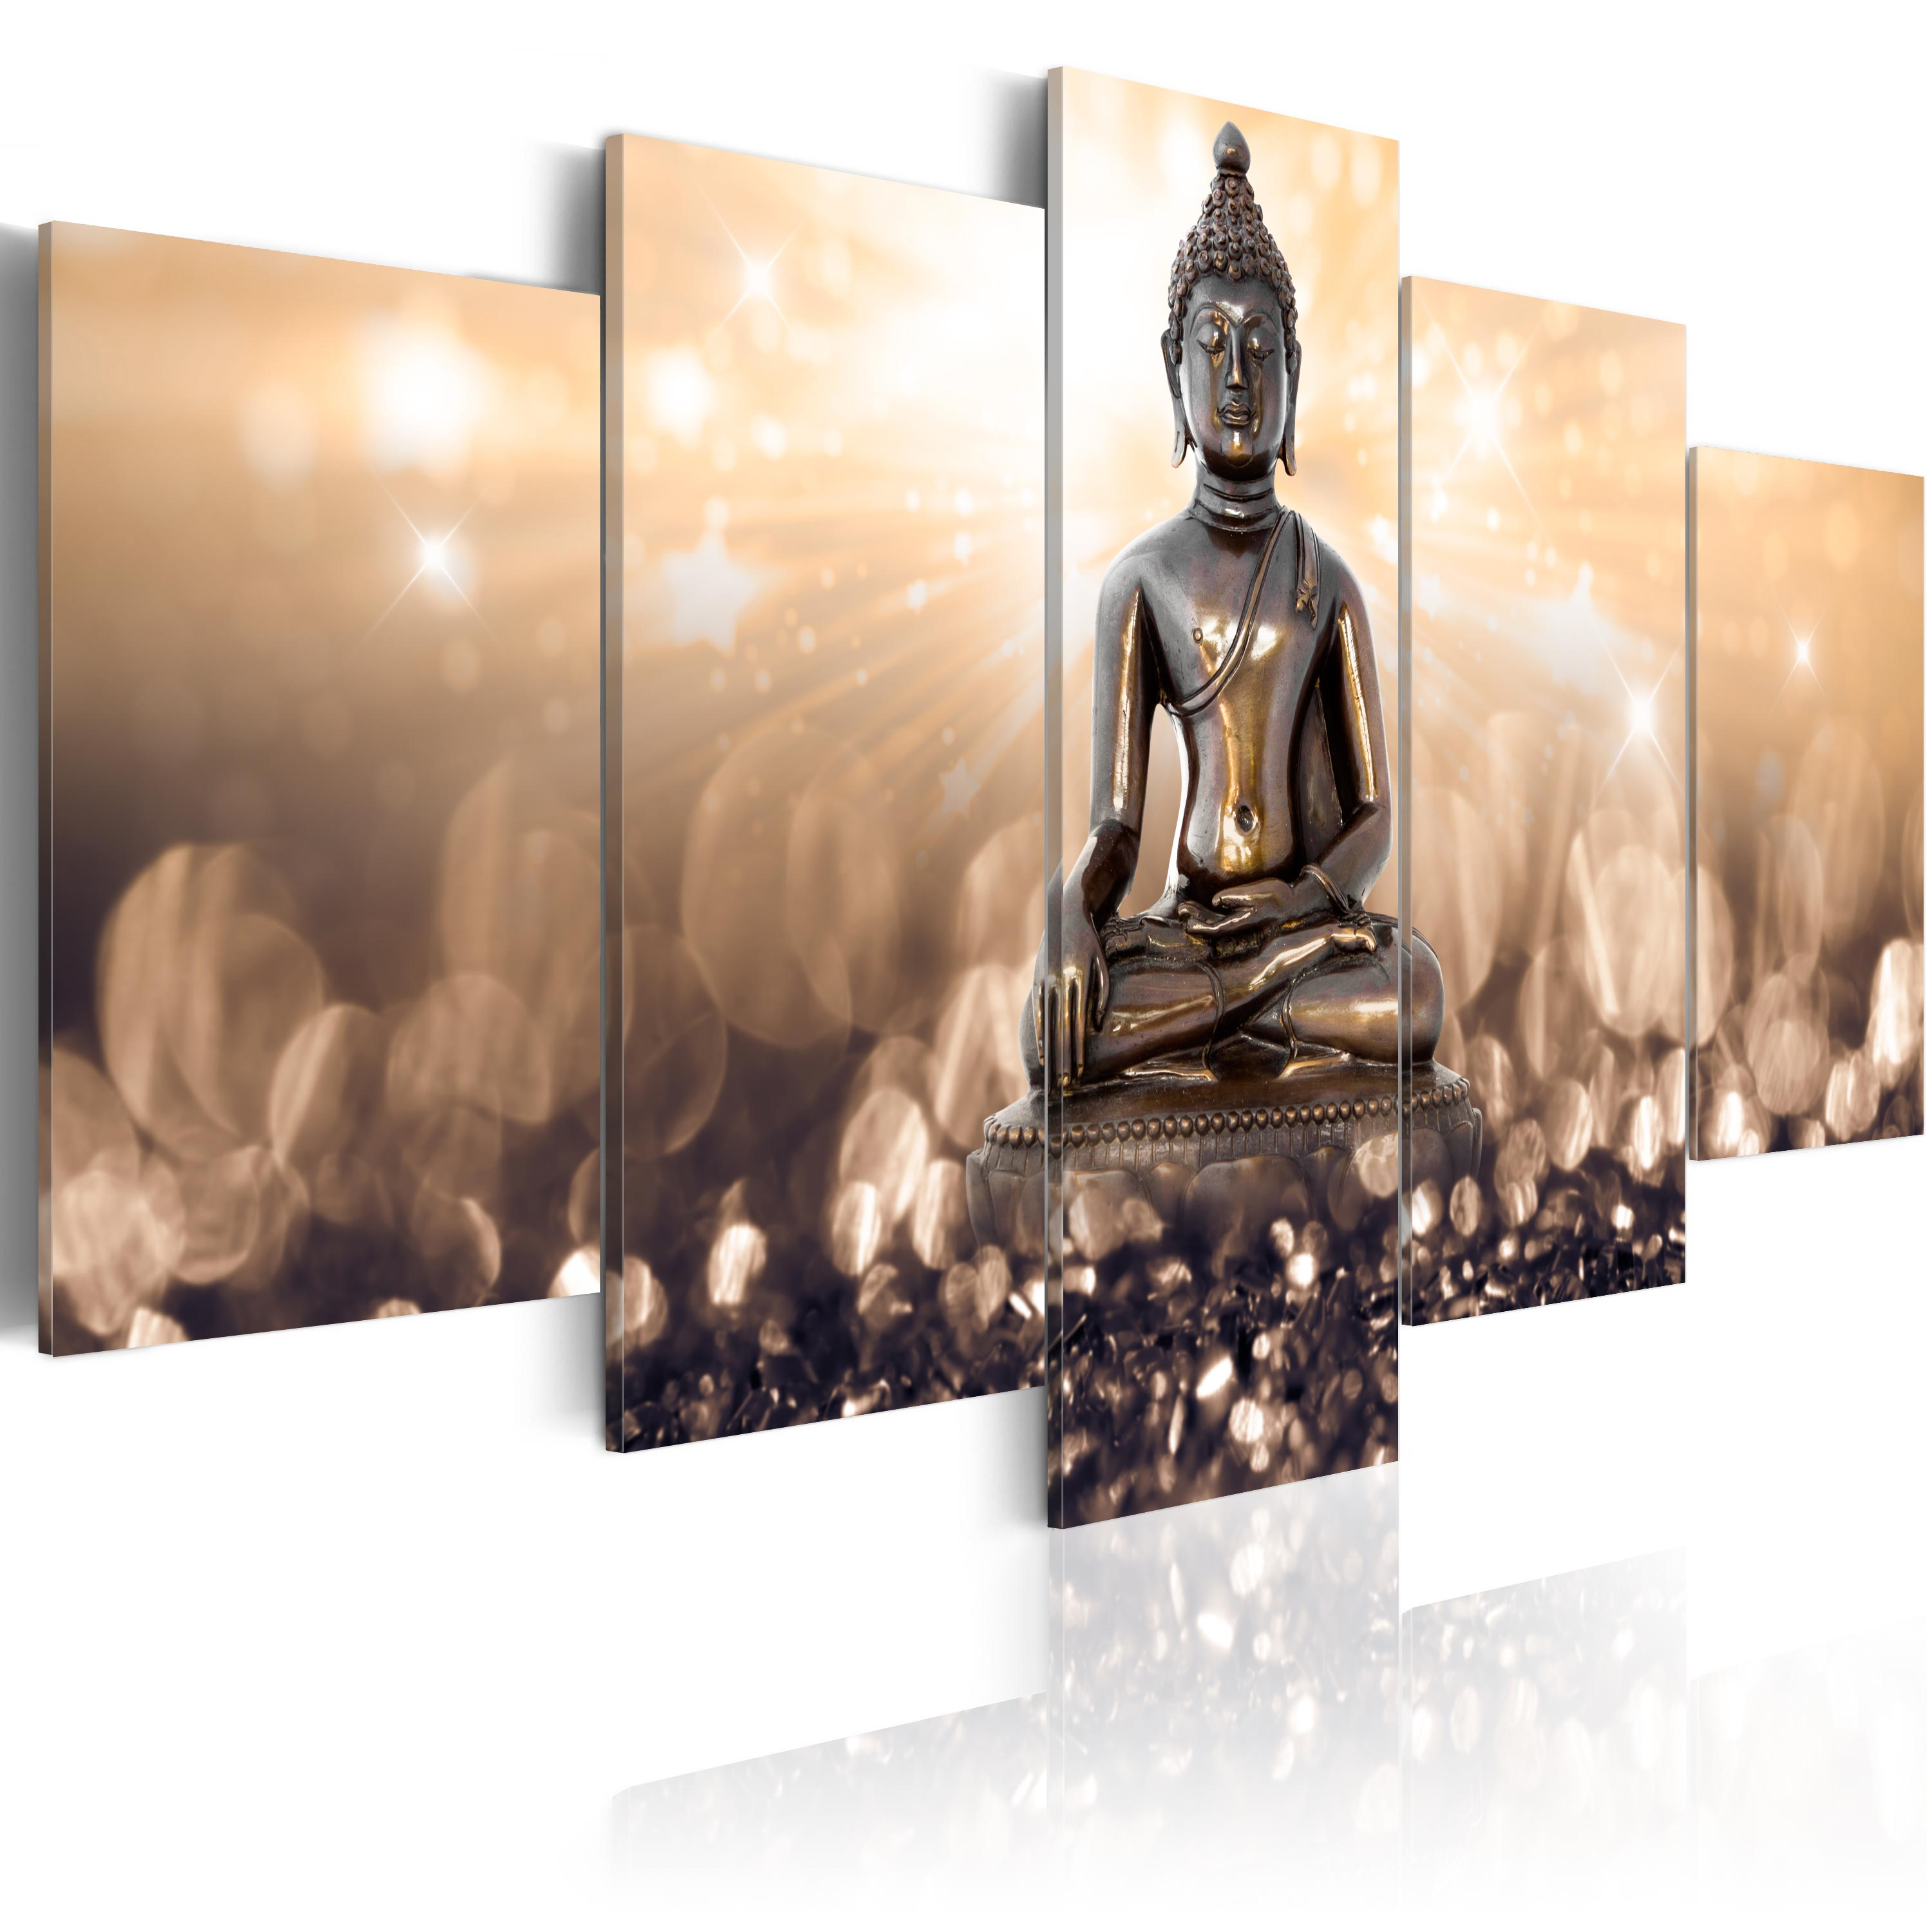 leinwand bilder xxl fertig aufgespannt bild buddha h c 0012 b n. Black Bedroom Furniture Sets. Home Design Ideas